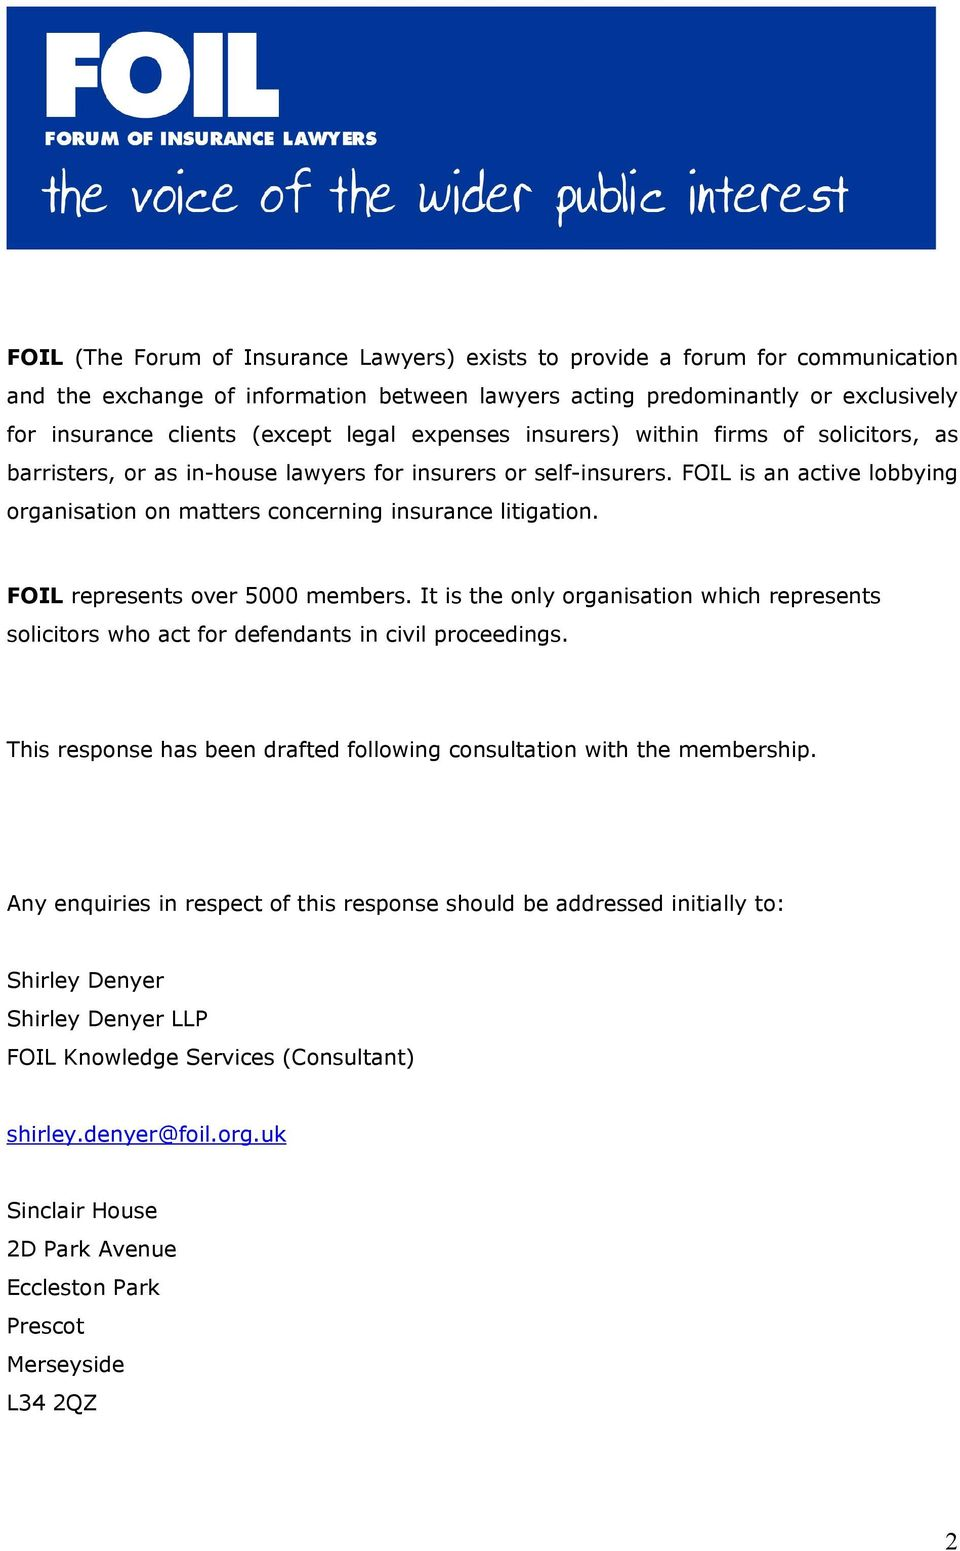 FOIL is an active lobbying organisation on matters concerning insurance litigation. FOIL represents over 5000 members.